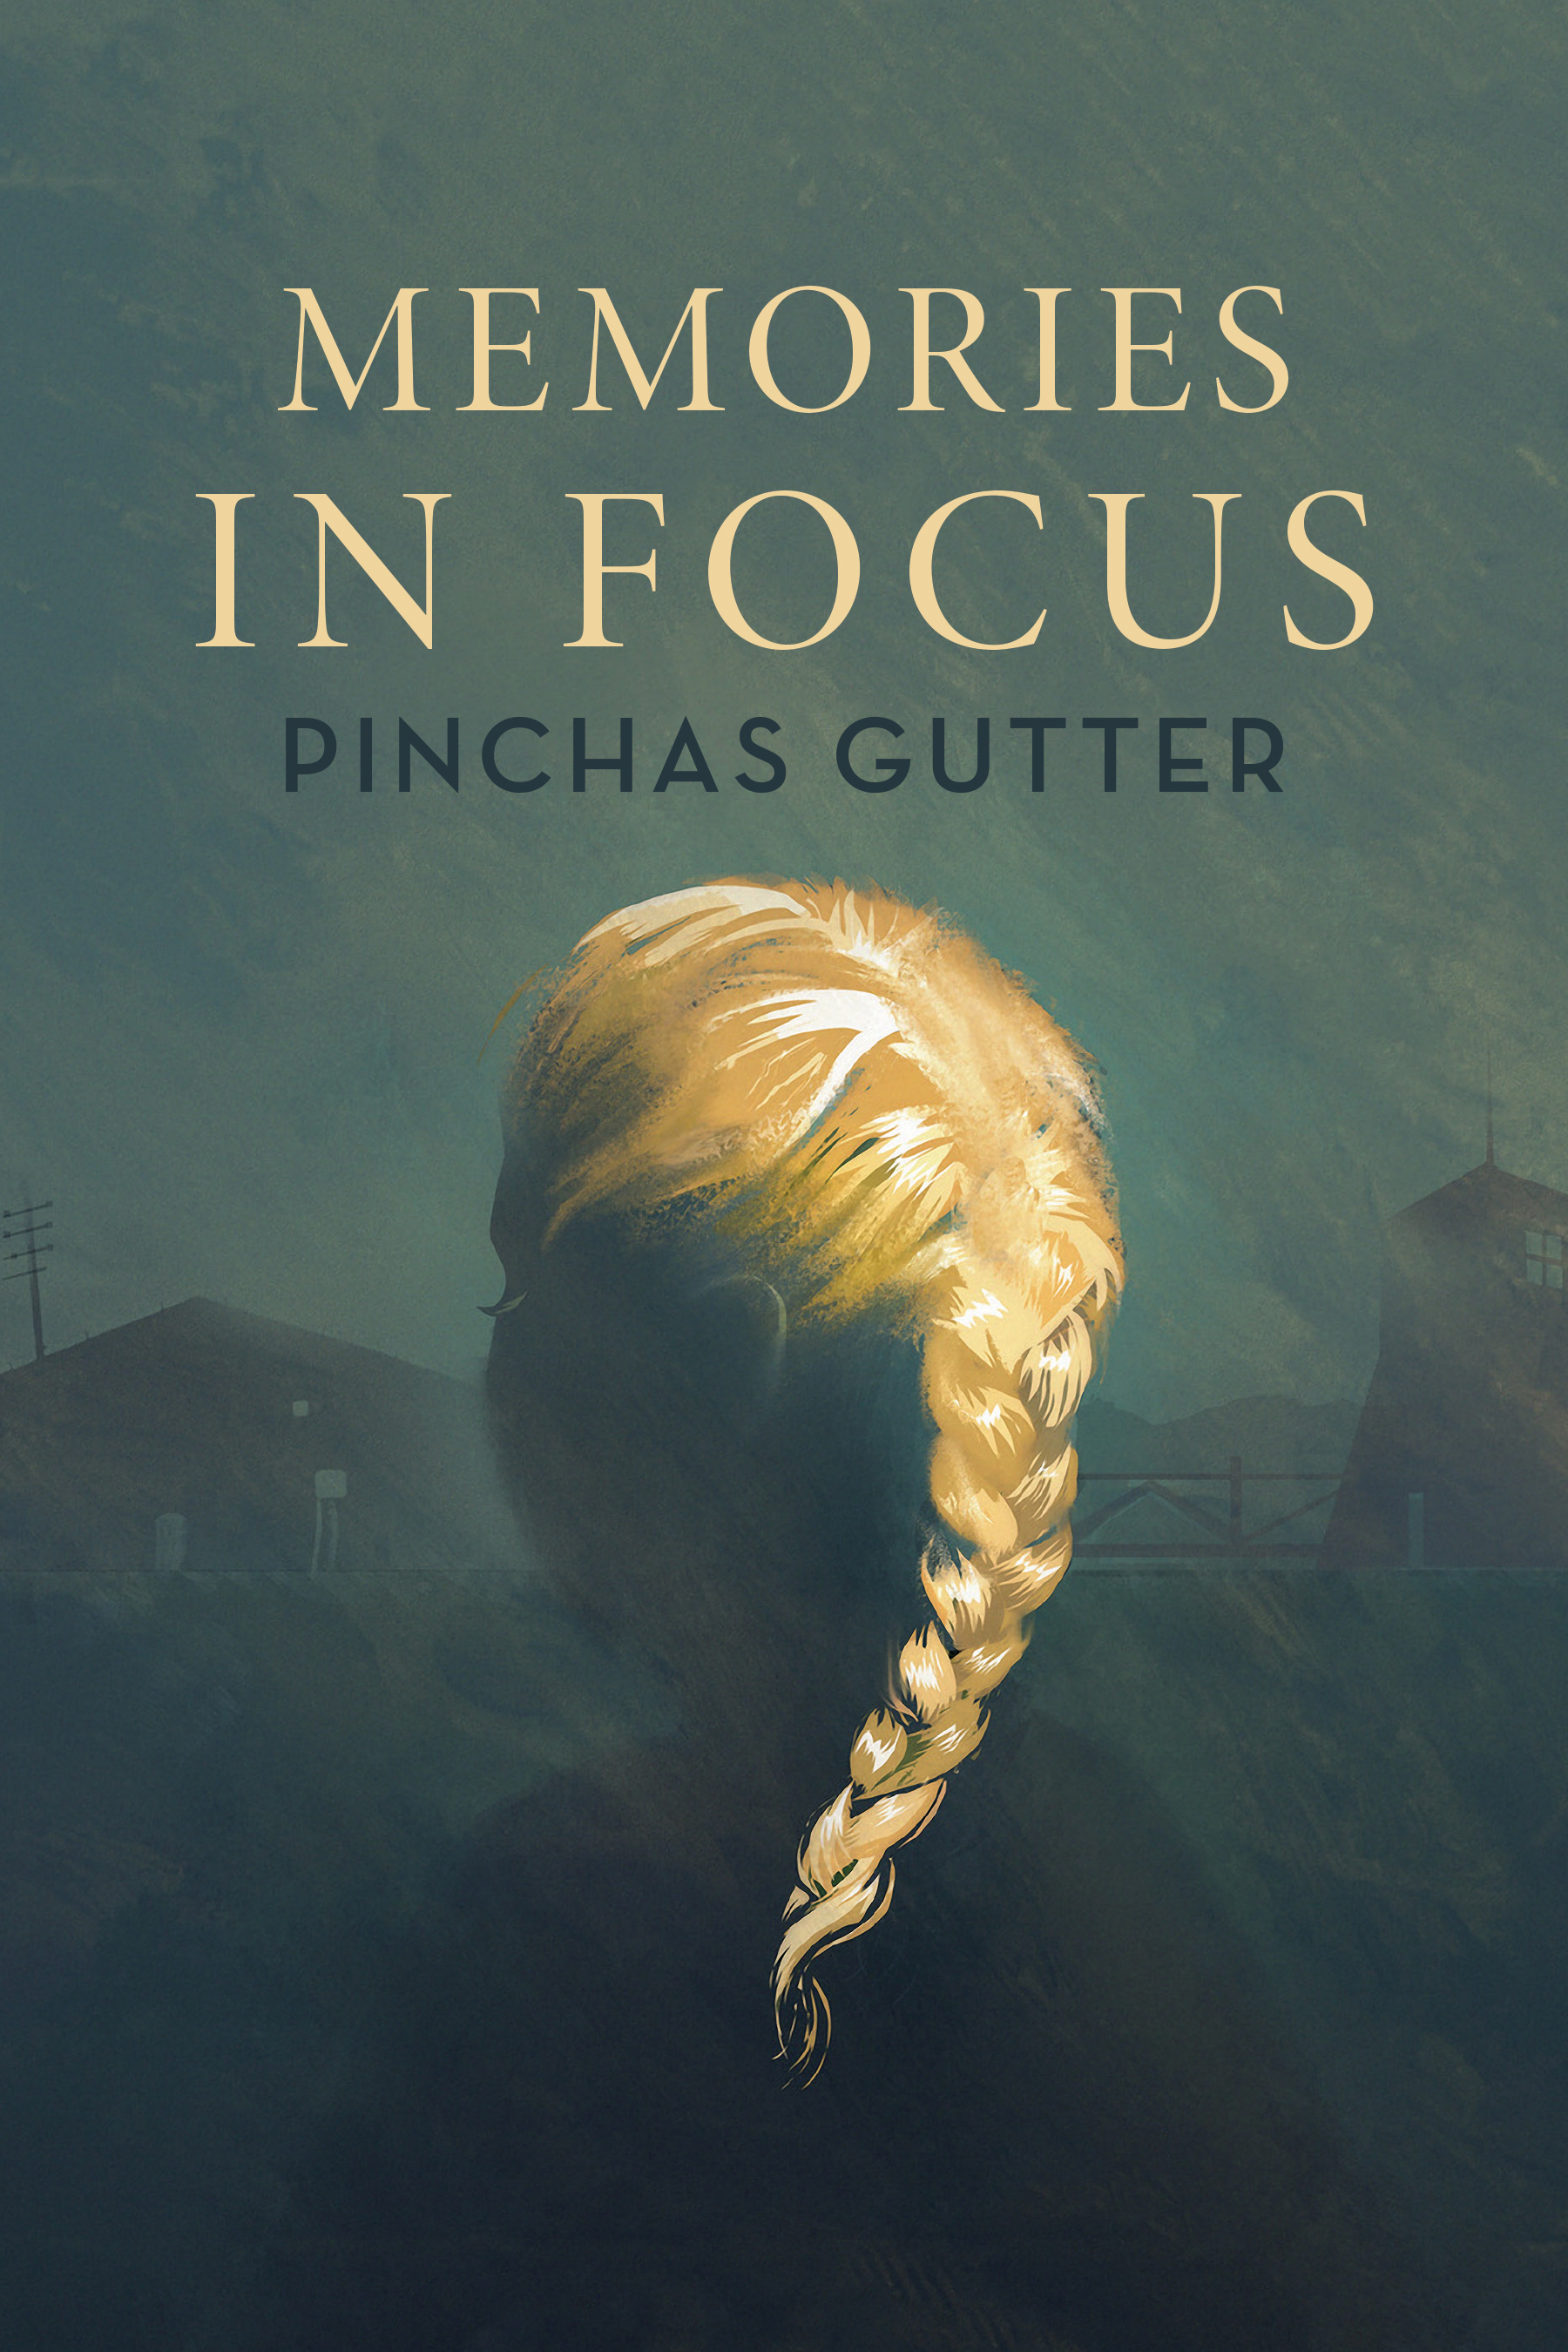 """Memories in Focus"" by Pinchas Gutter"